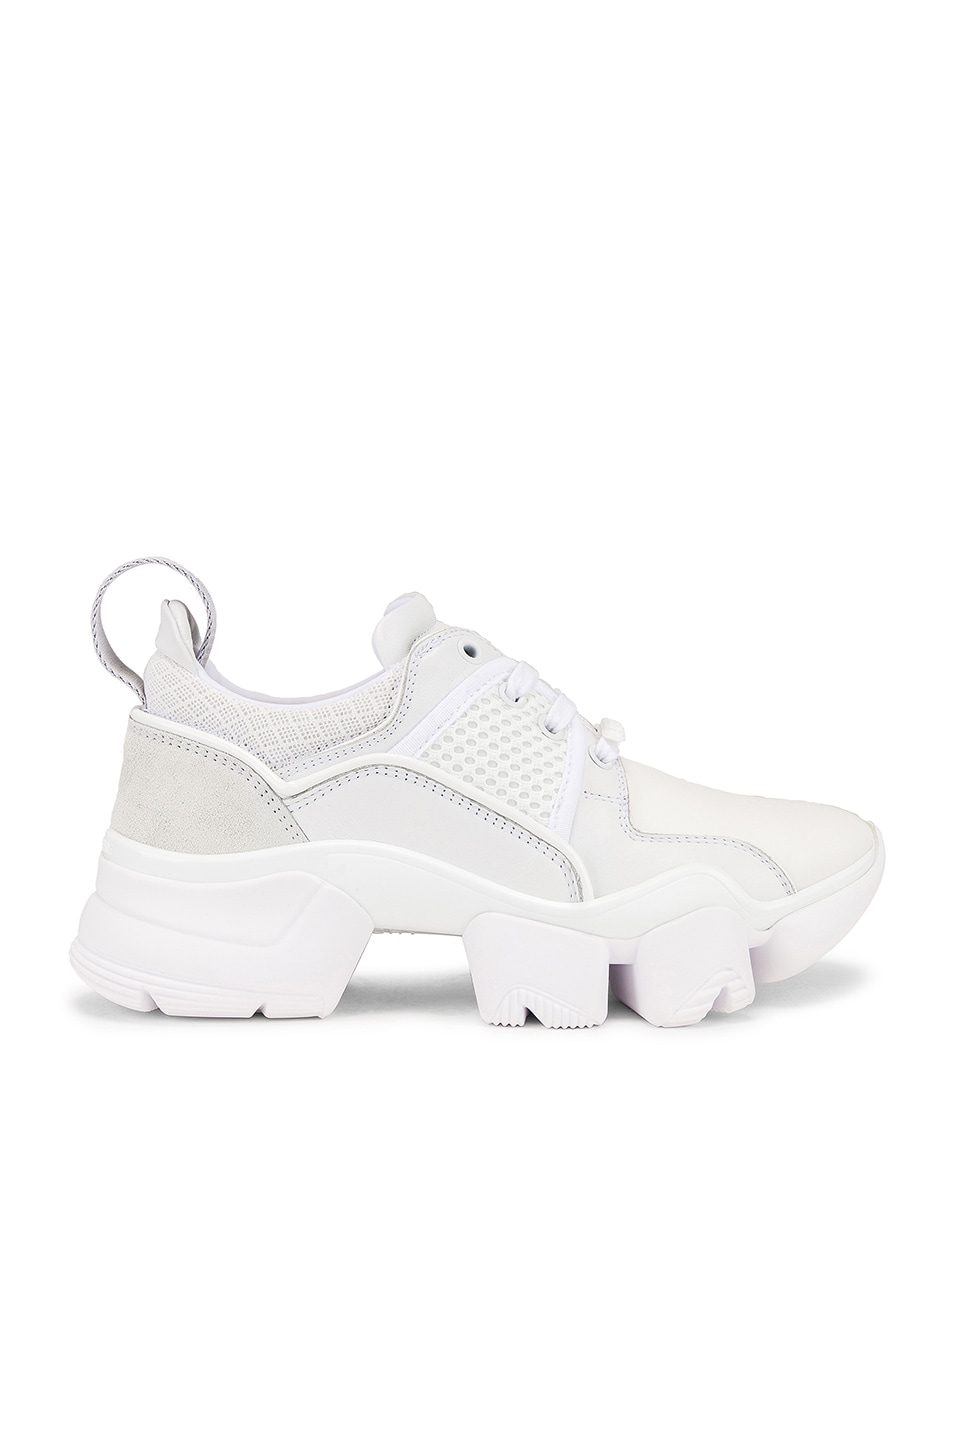 Image 1 of Givenchy Jaw Low Sneakers in White